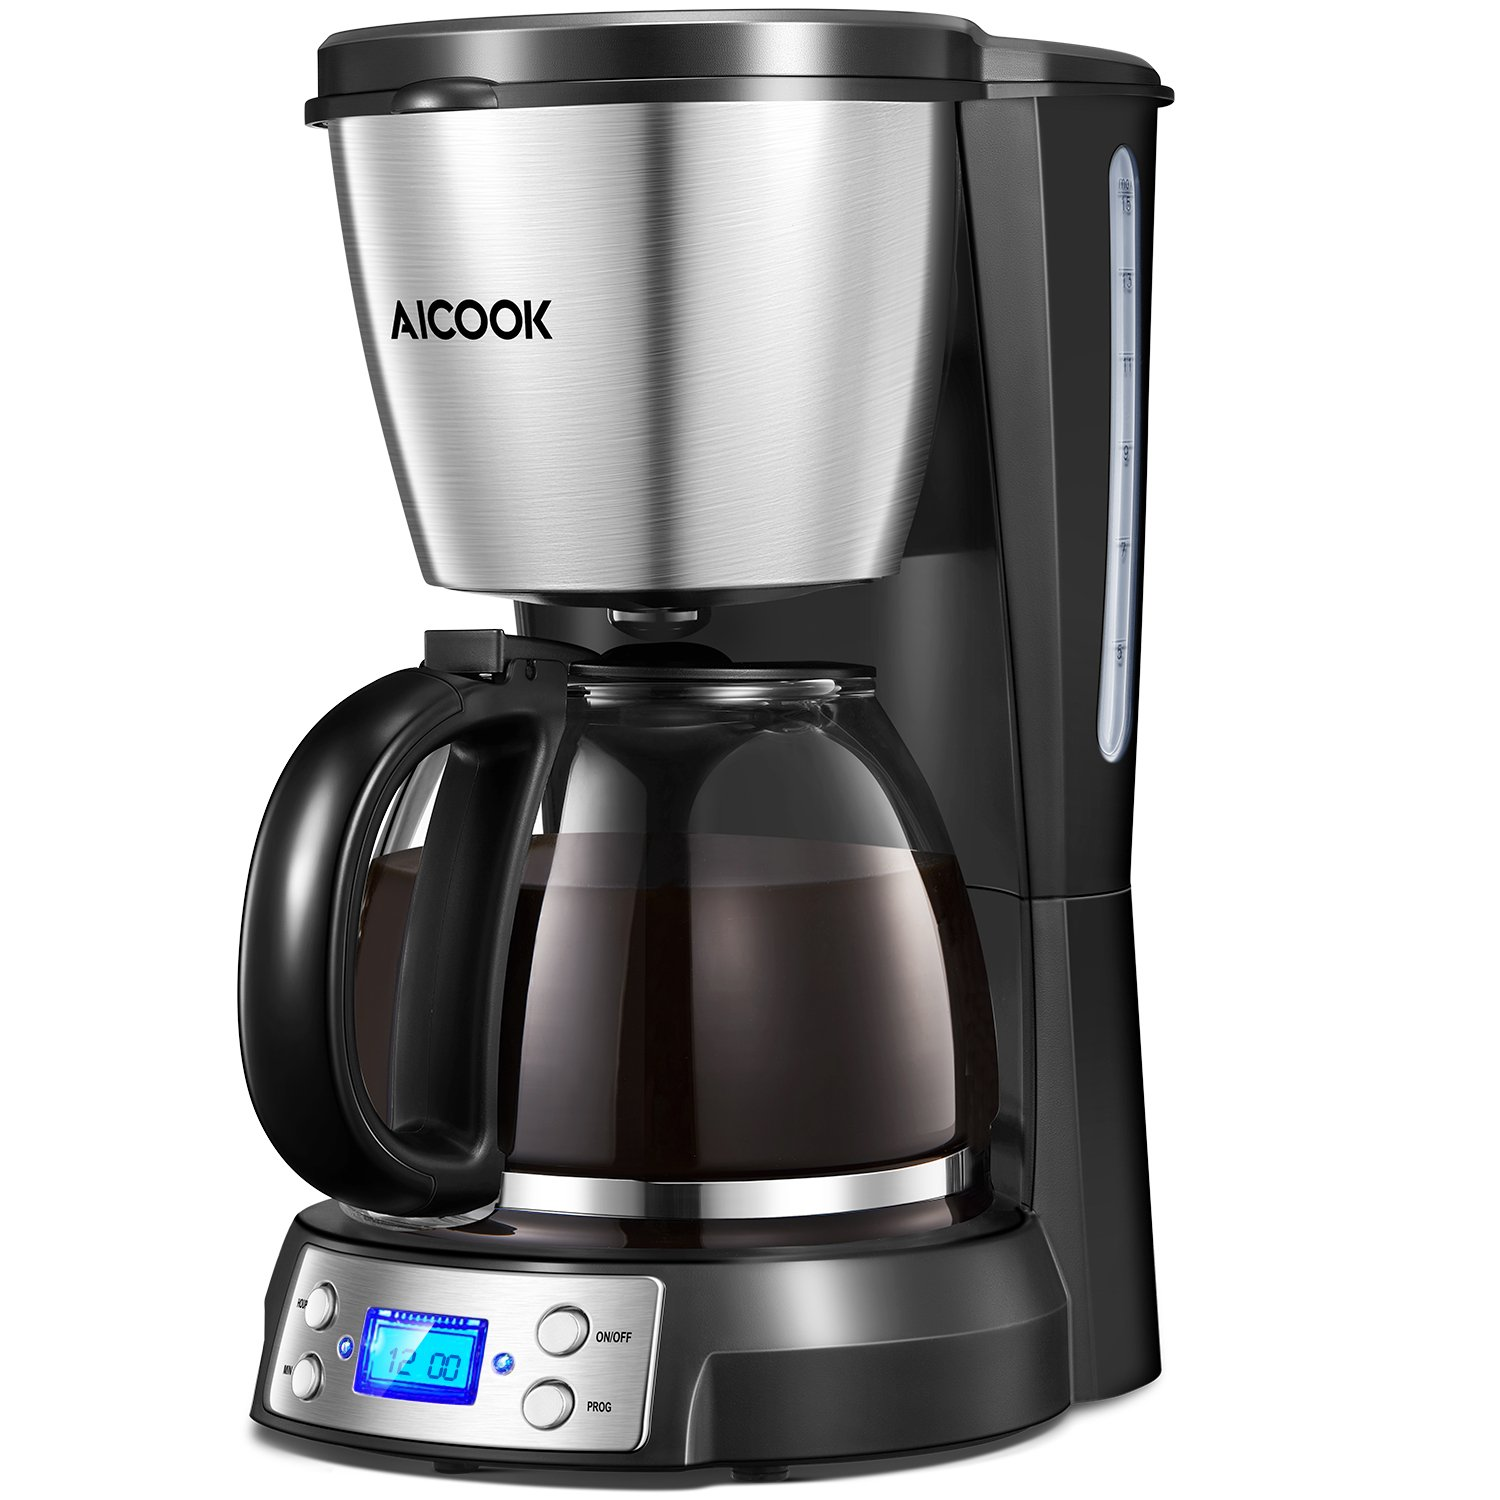 Coffee Maker, Aicook Drip Coffee Machine, 12-Cup Coffee Maker with Timer, Anti-Drip System, Keep Warm for 40 Minutes and Automatically Shut Down, 1.5L Programmable Filter Coffee Makers, Reusable Filter, Black.